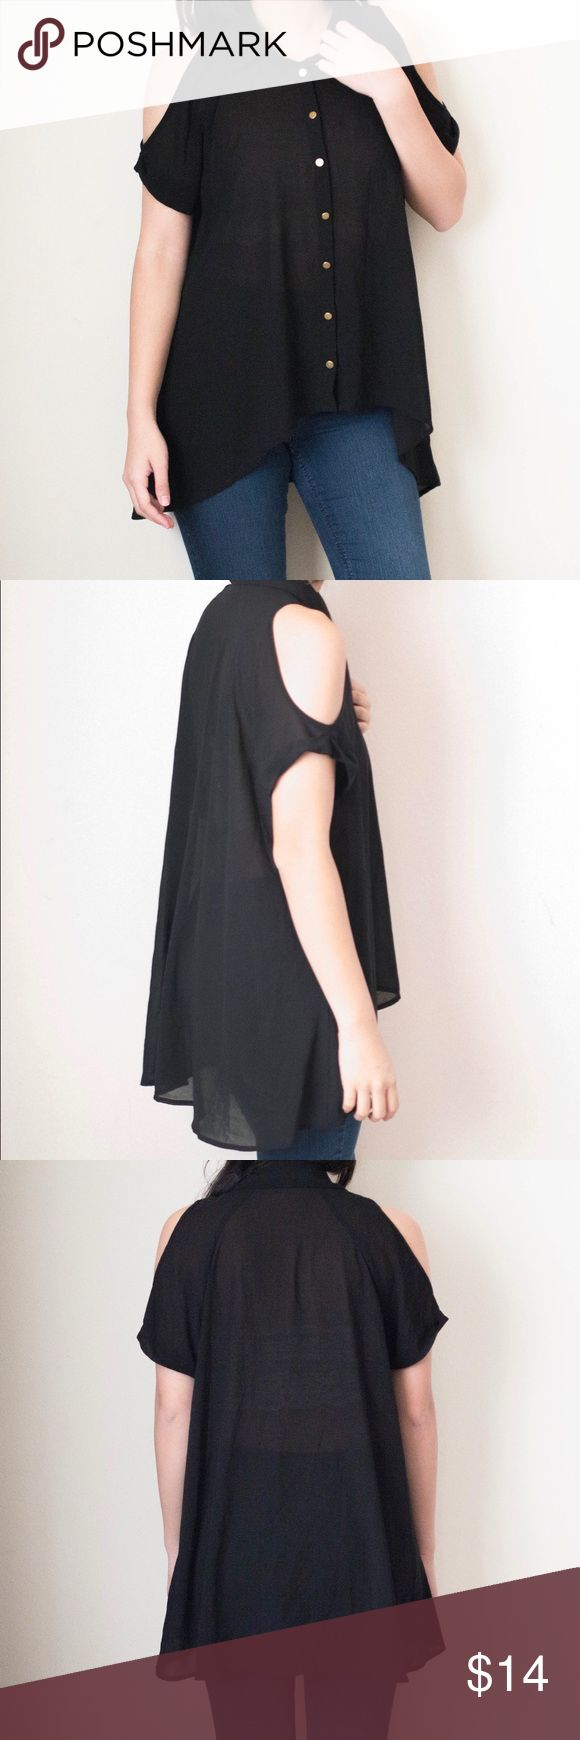 Black Cold Shoulder Chiffon Cover Up Button Up Forever 21. Size Small. Worn twice; in overall great condition! Forever 21 Swim Coverups